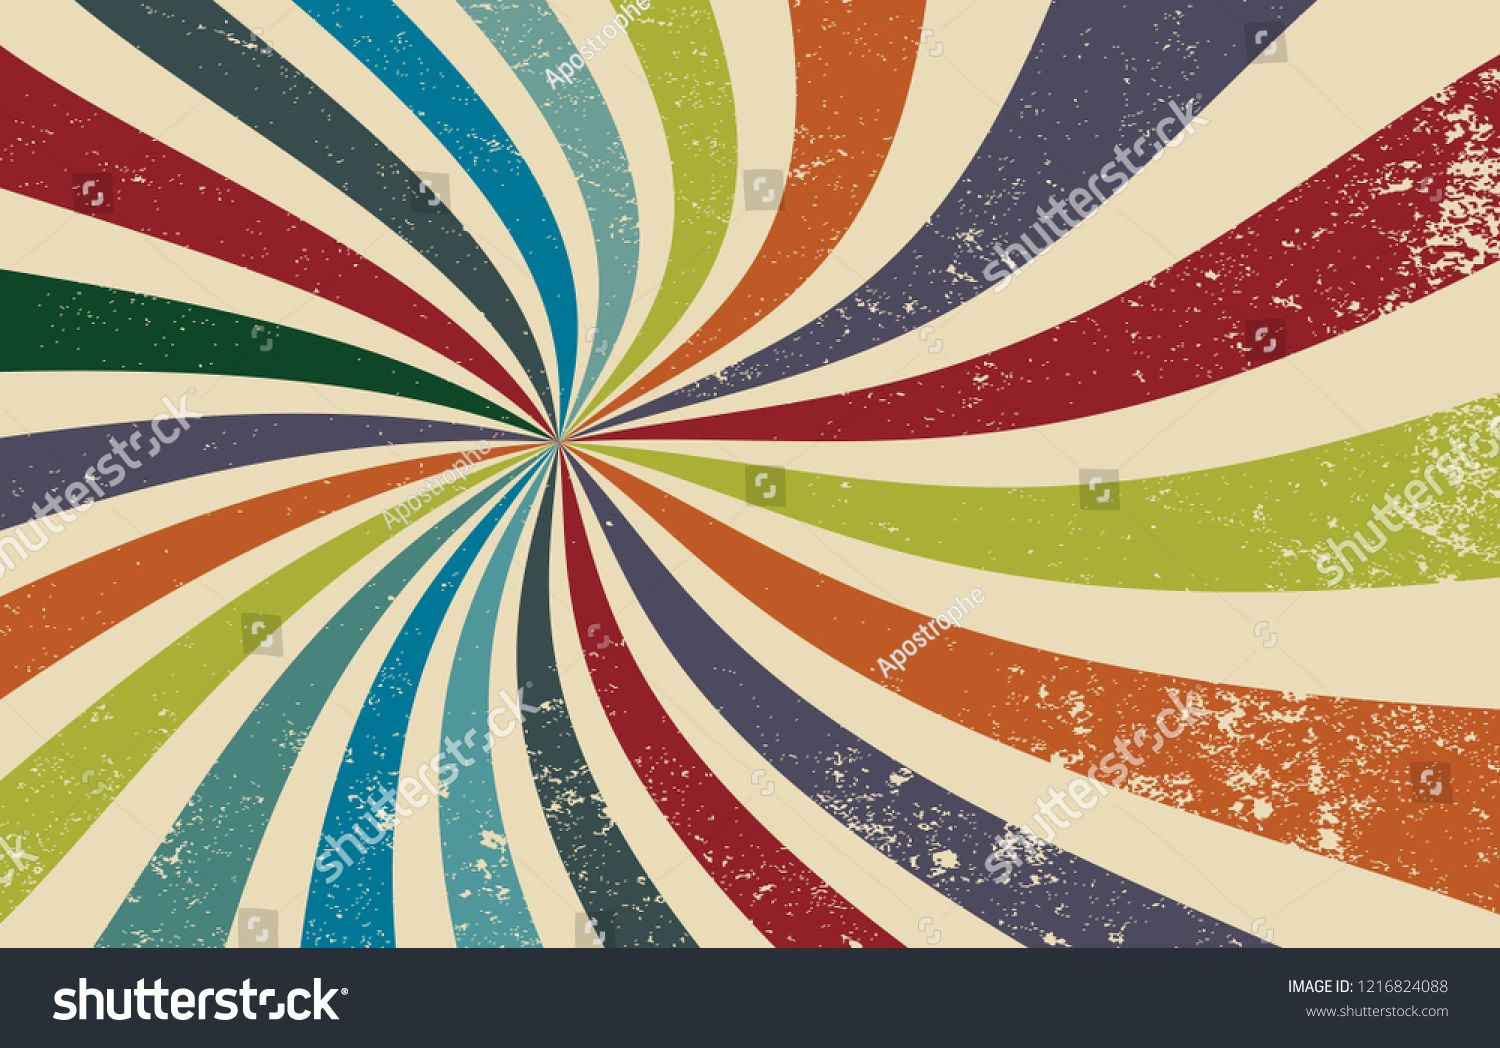 Retro Grunge Starburst Or Sunburst Background Vector Pattern With A Dark Vintage Color Palette Of Red Oran Vintage Colour Palette Vector Pattern Vintage Colors